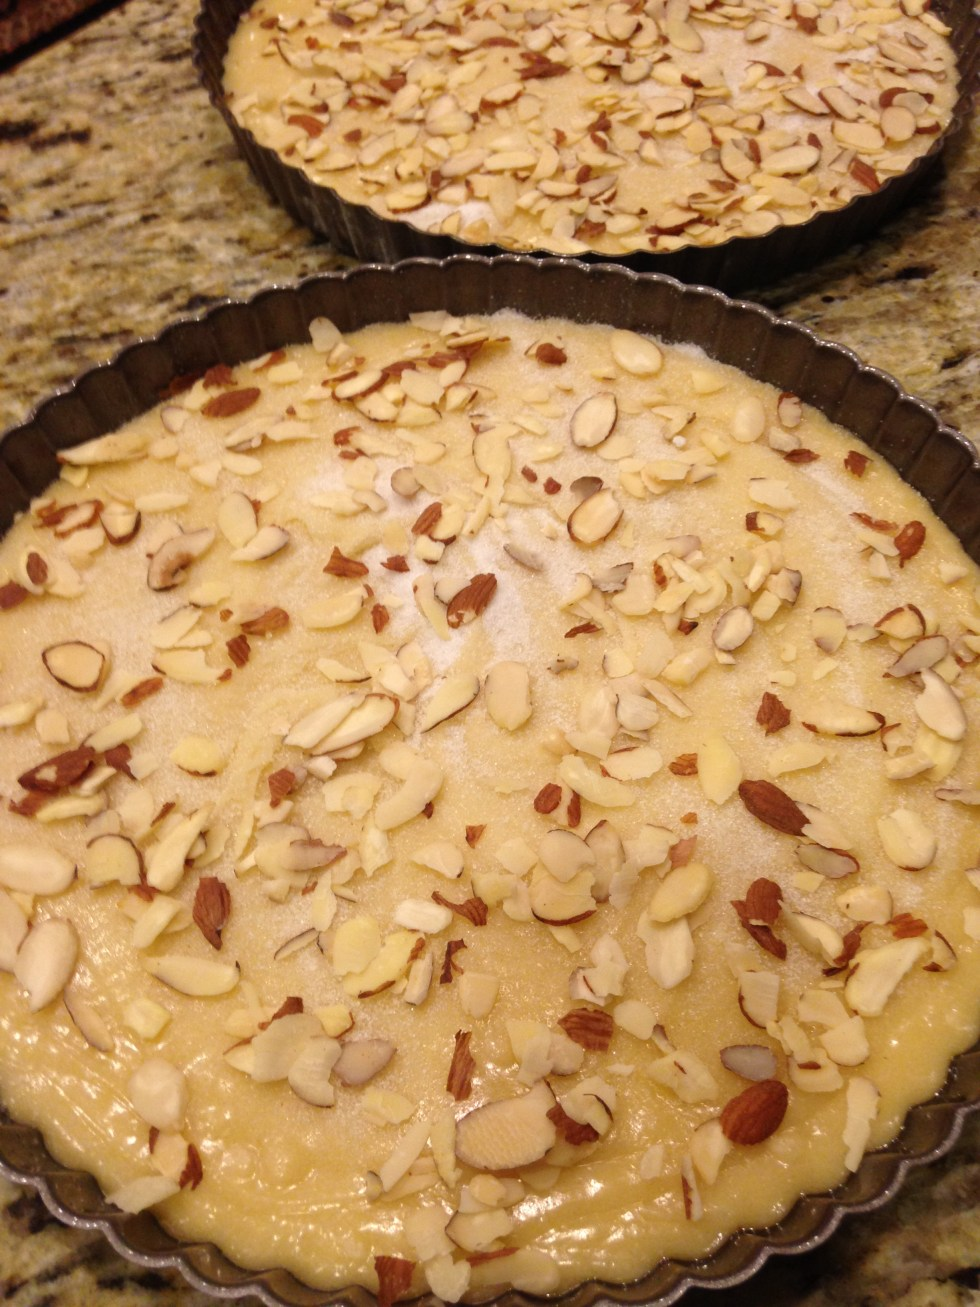 Ready for oven all sprinkled with sugar and almonds